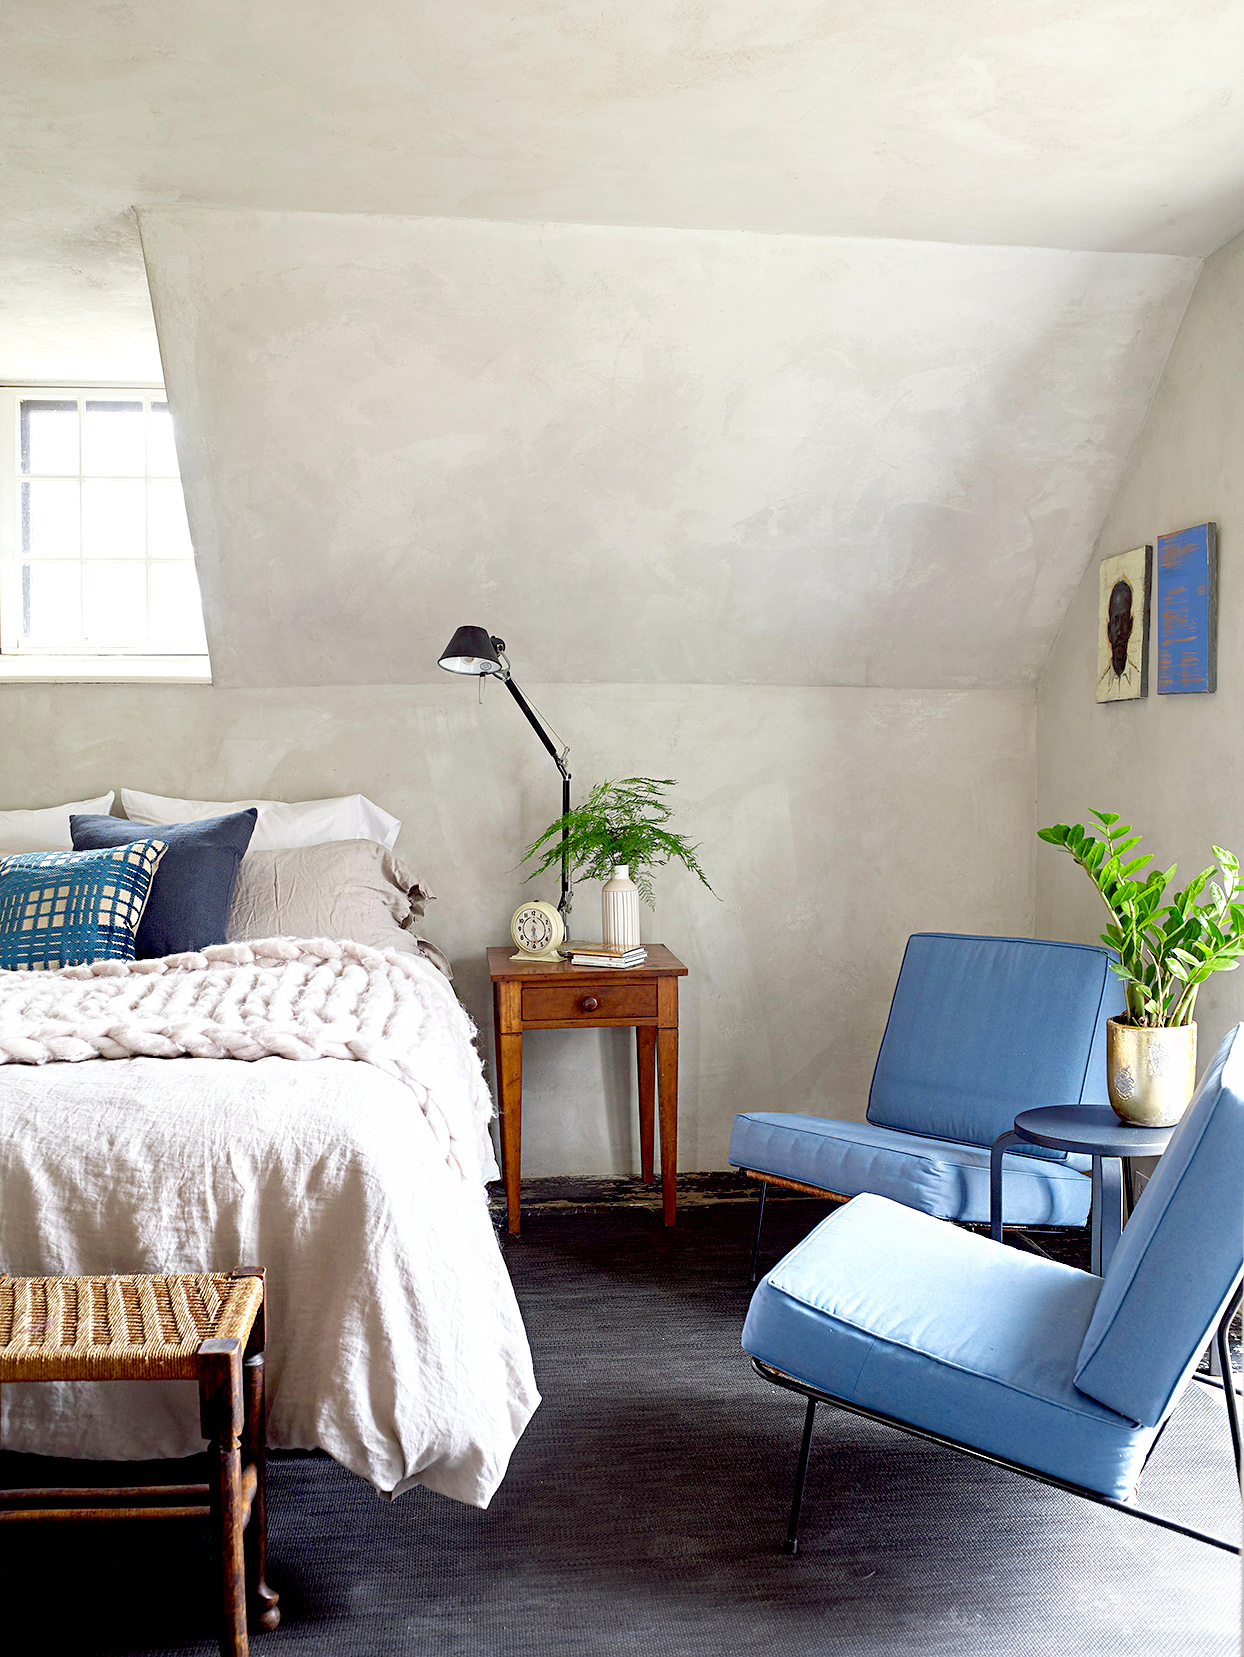 Bedroom with blue chairs and vaulted ceiling